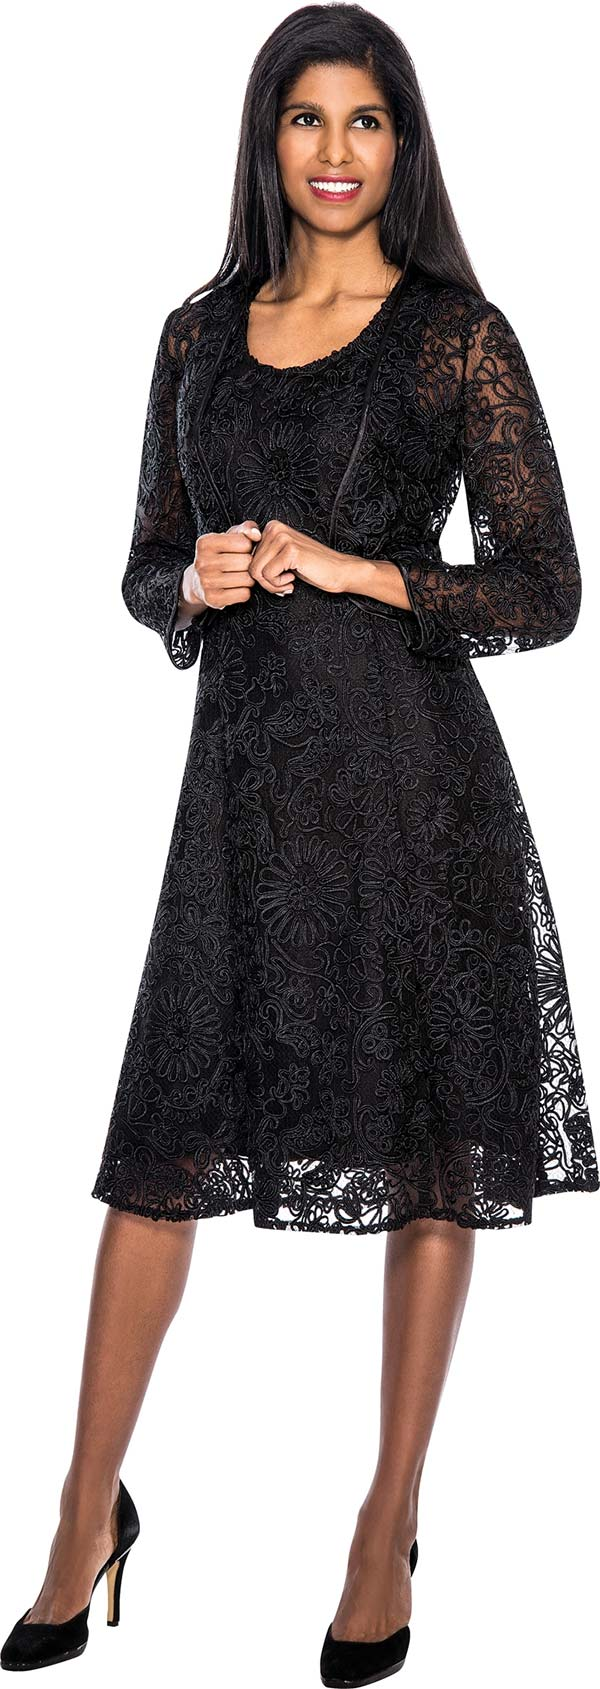 Nubiano Dresses DN5232-Black - Womens Elaborate Lace Dress